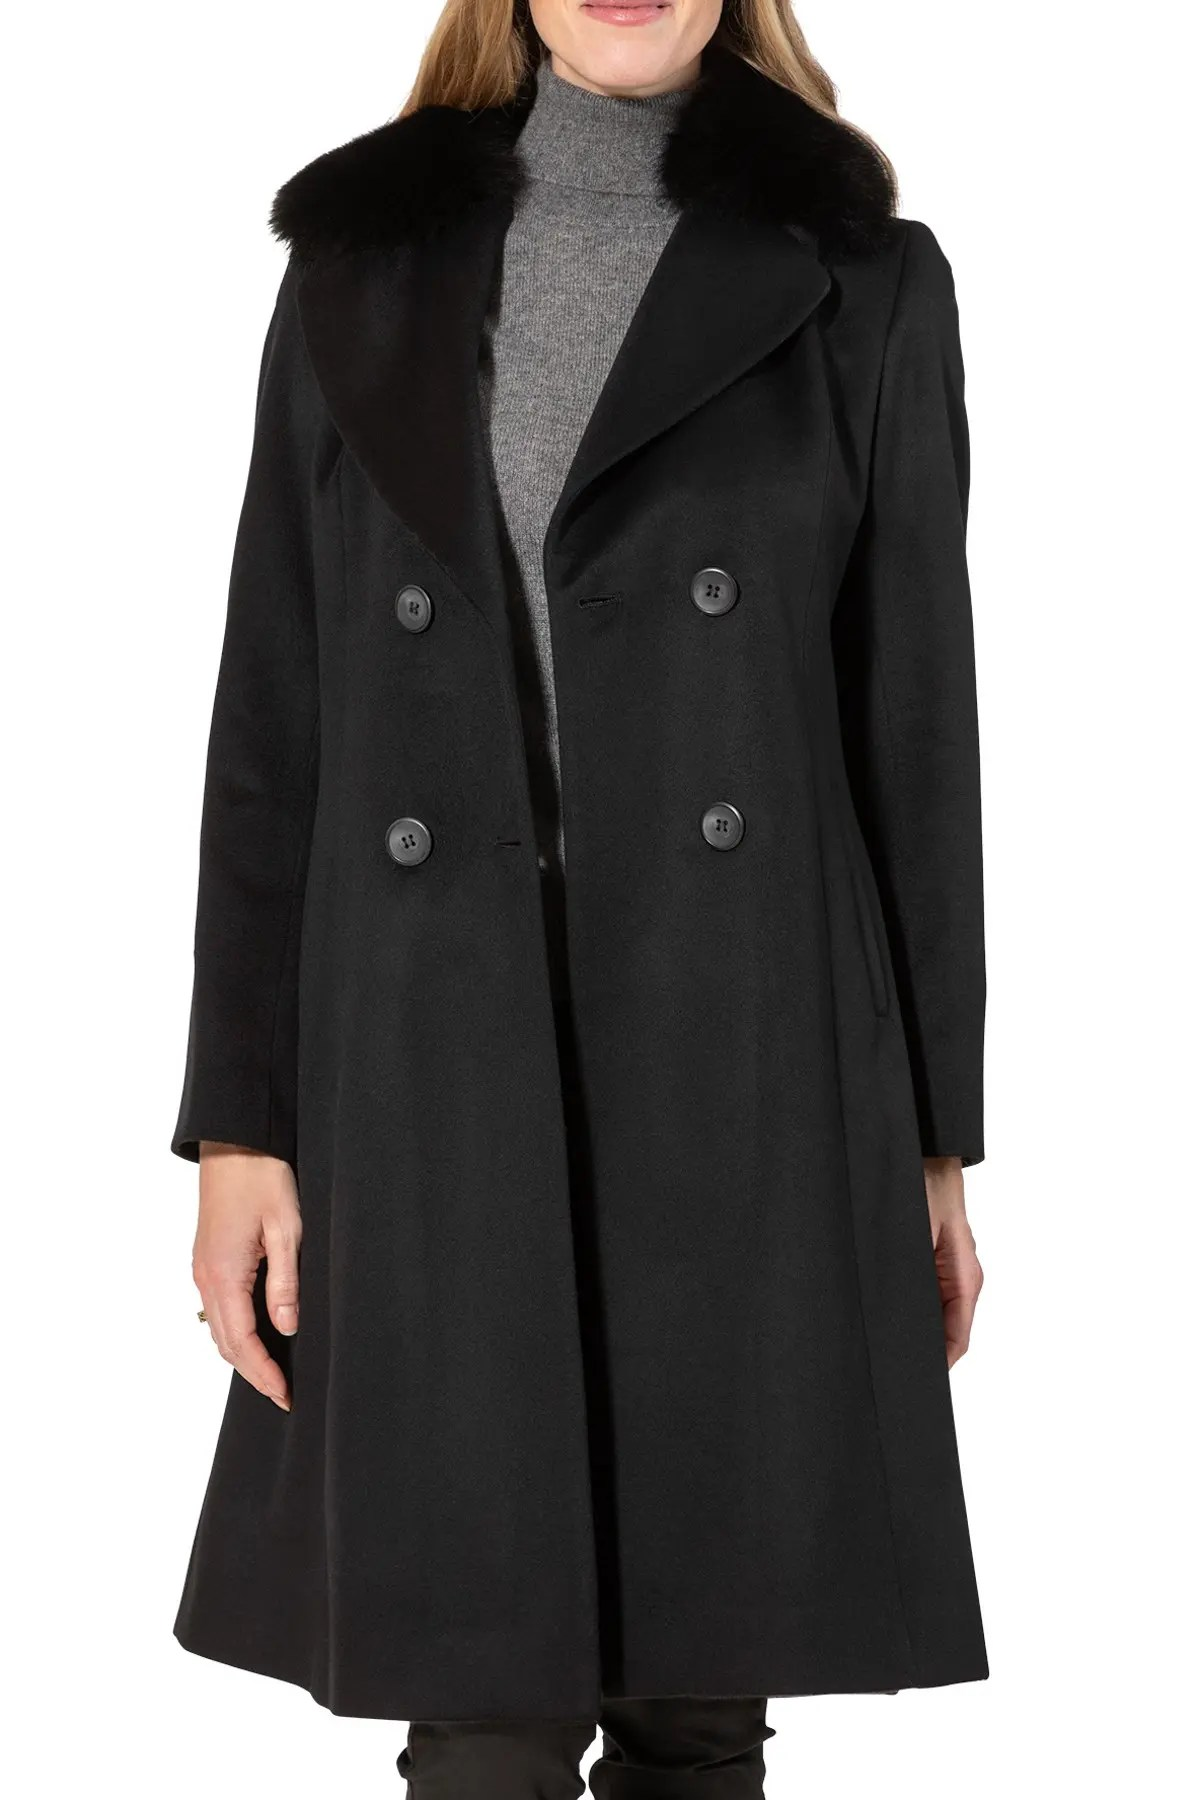 sofia cashmere double breasted genuine fox fur coat nordstrom rack